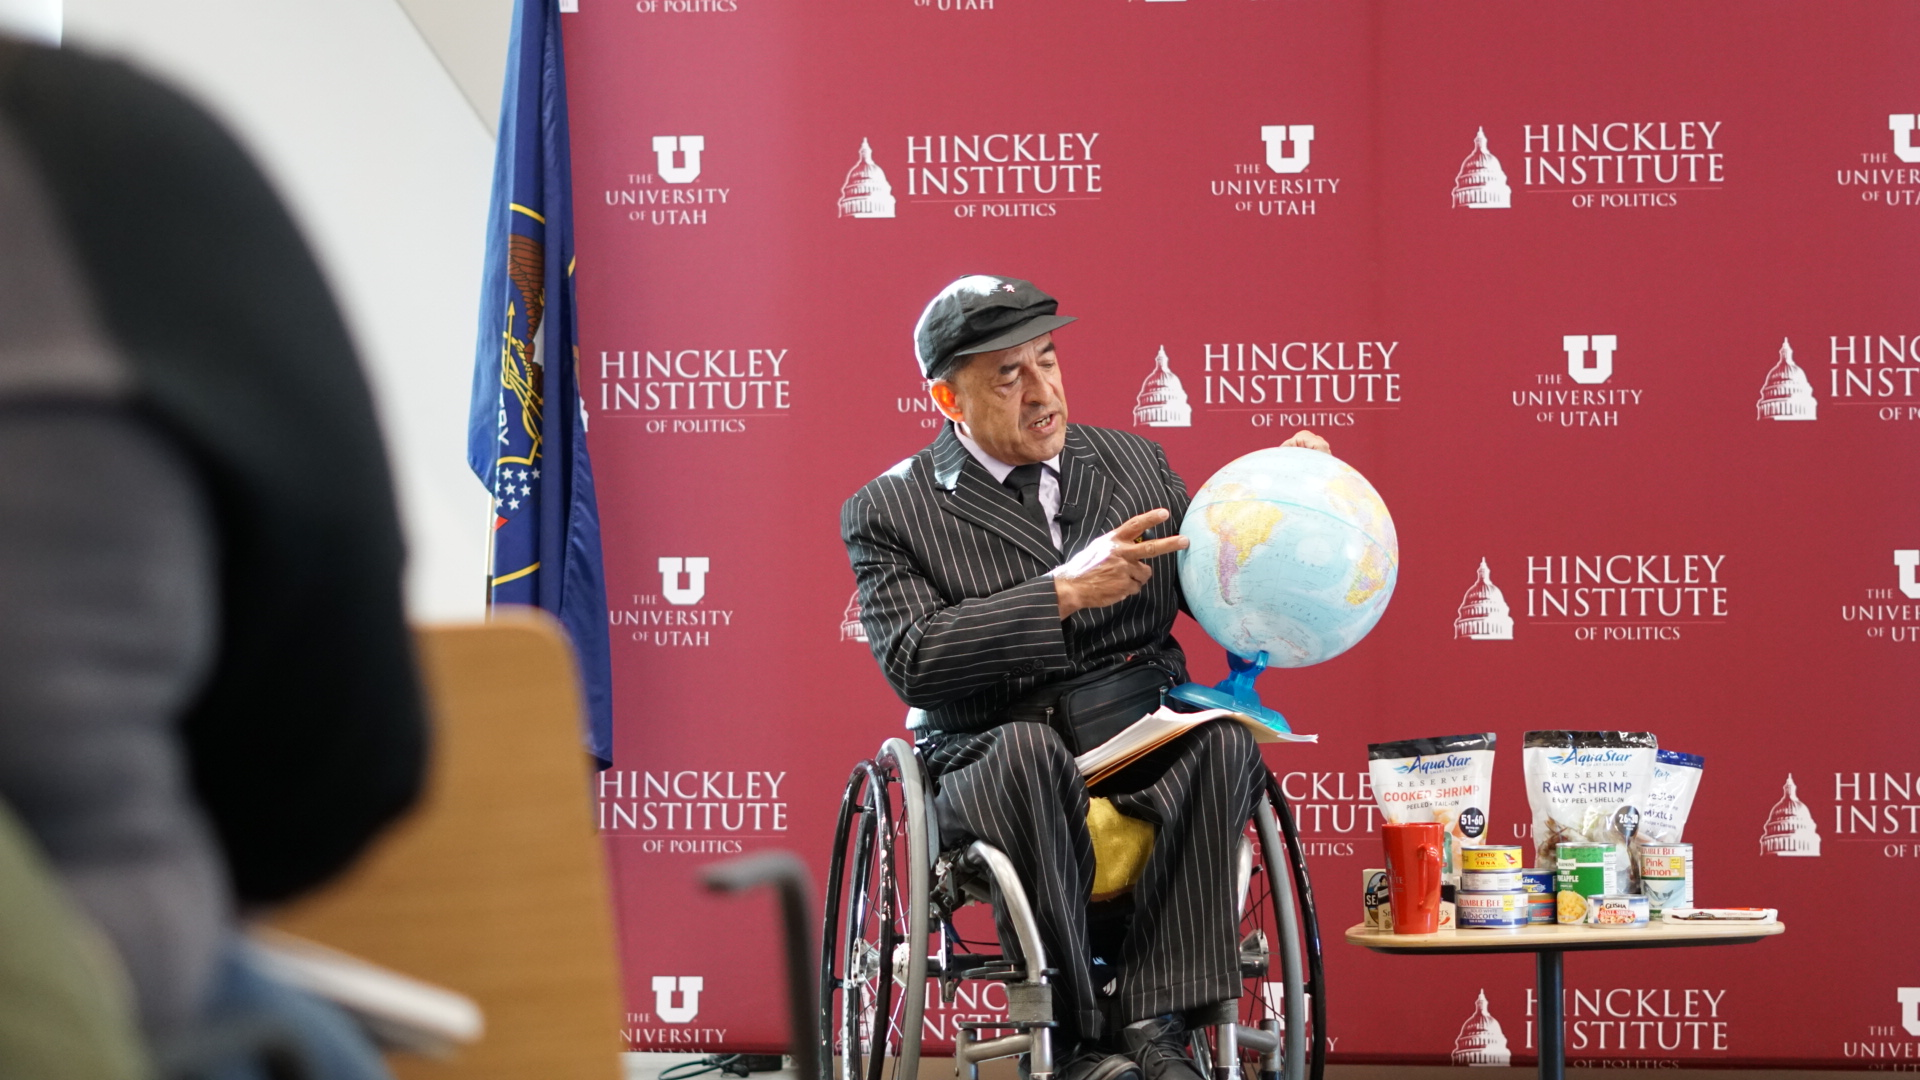 Danny Quintana speaks at the University of Utah's Hinckley Institute of Politics in Salt Lake City on Wednesday, Jan. 15, 2020, about his new global education campaign and the dangers of overfishing.